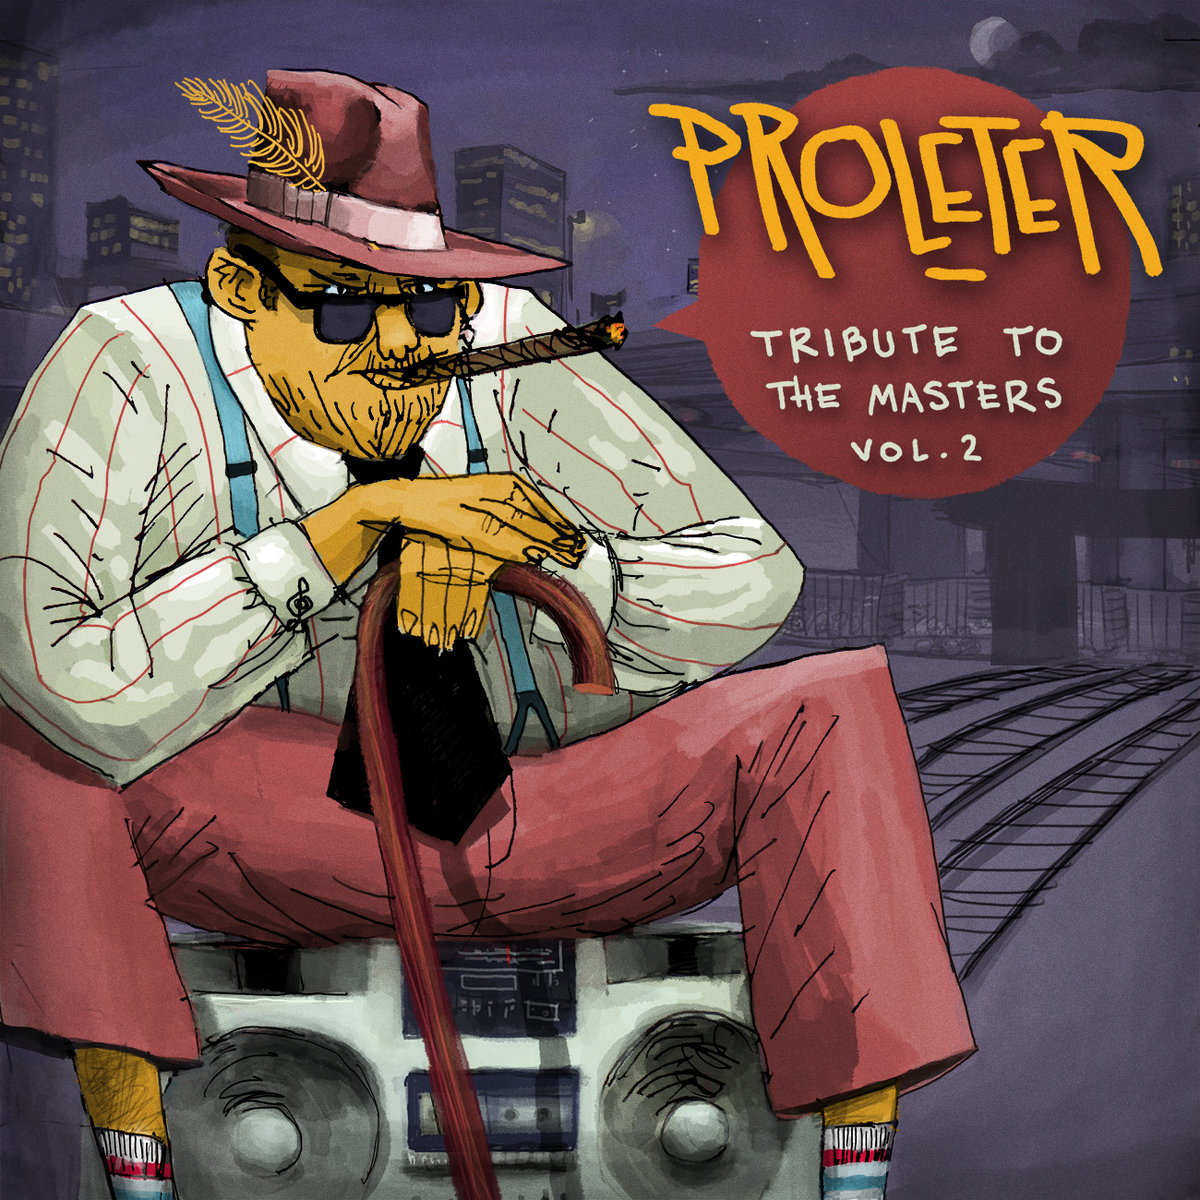 Ray Charles - Hit the road Jack (ProleteR tribute) | ProleteR